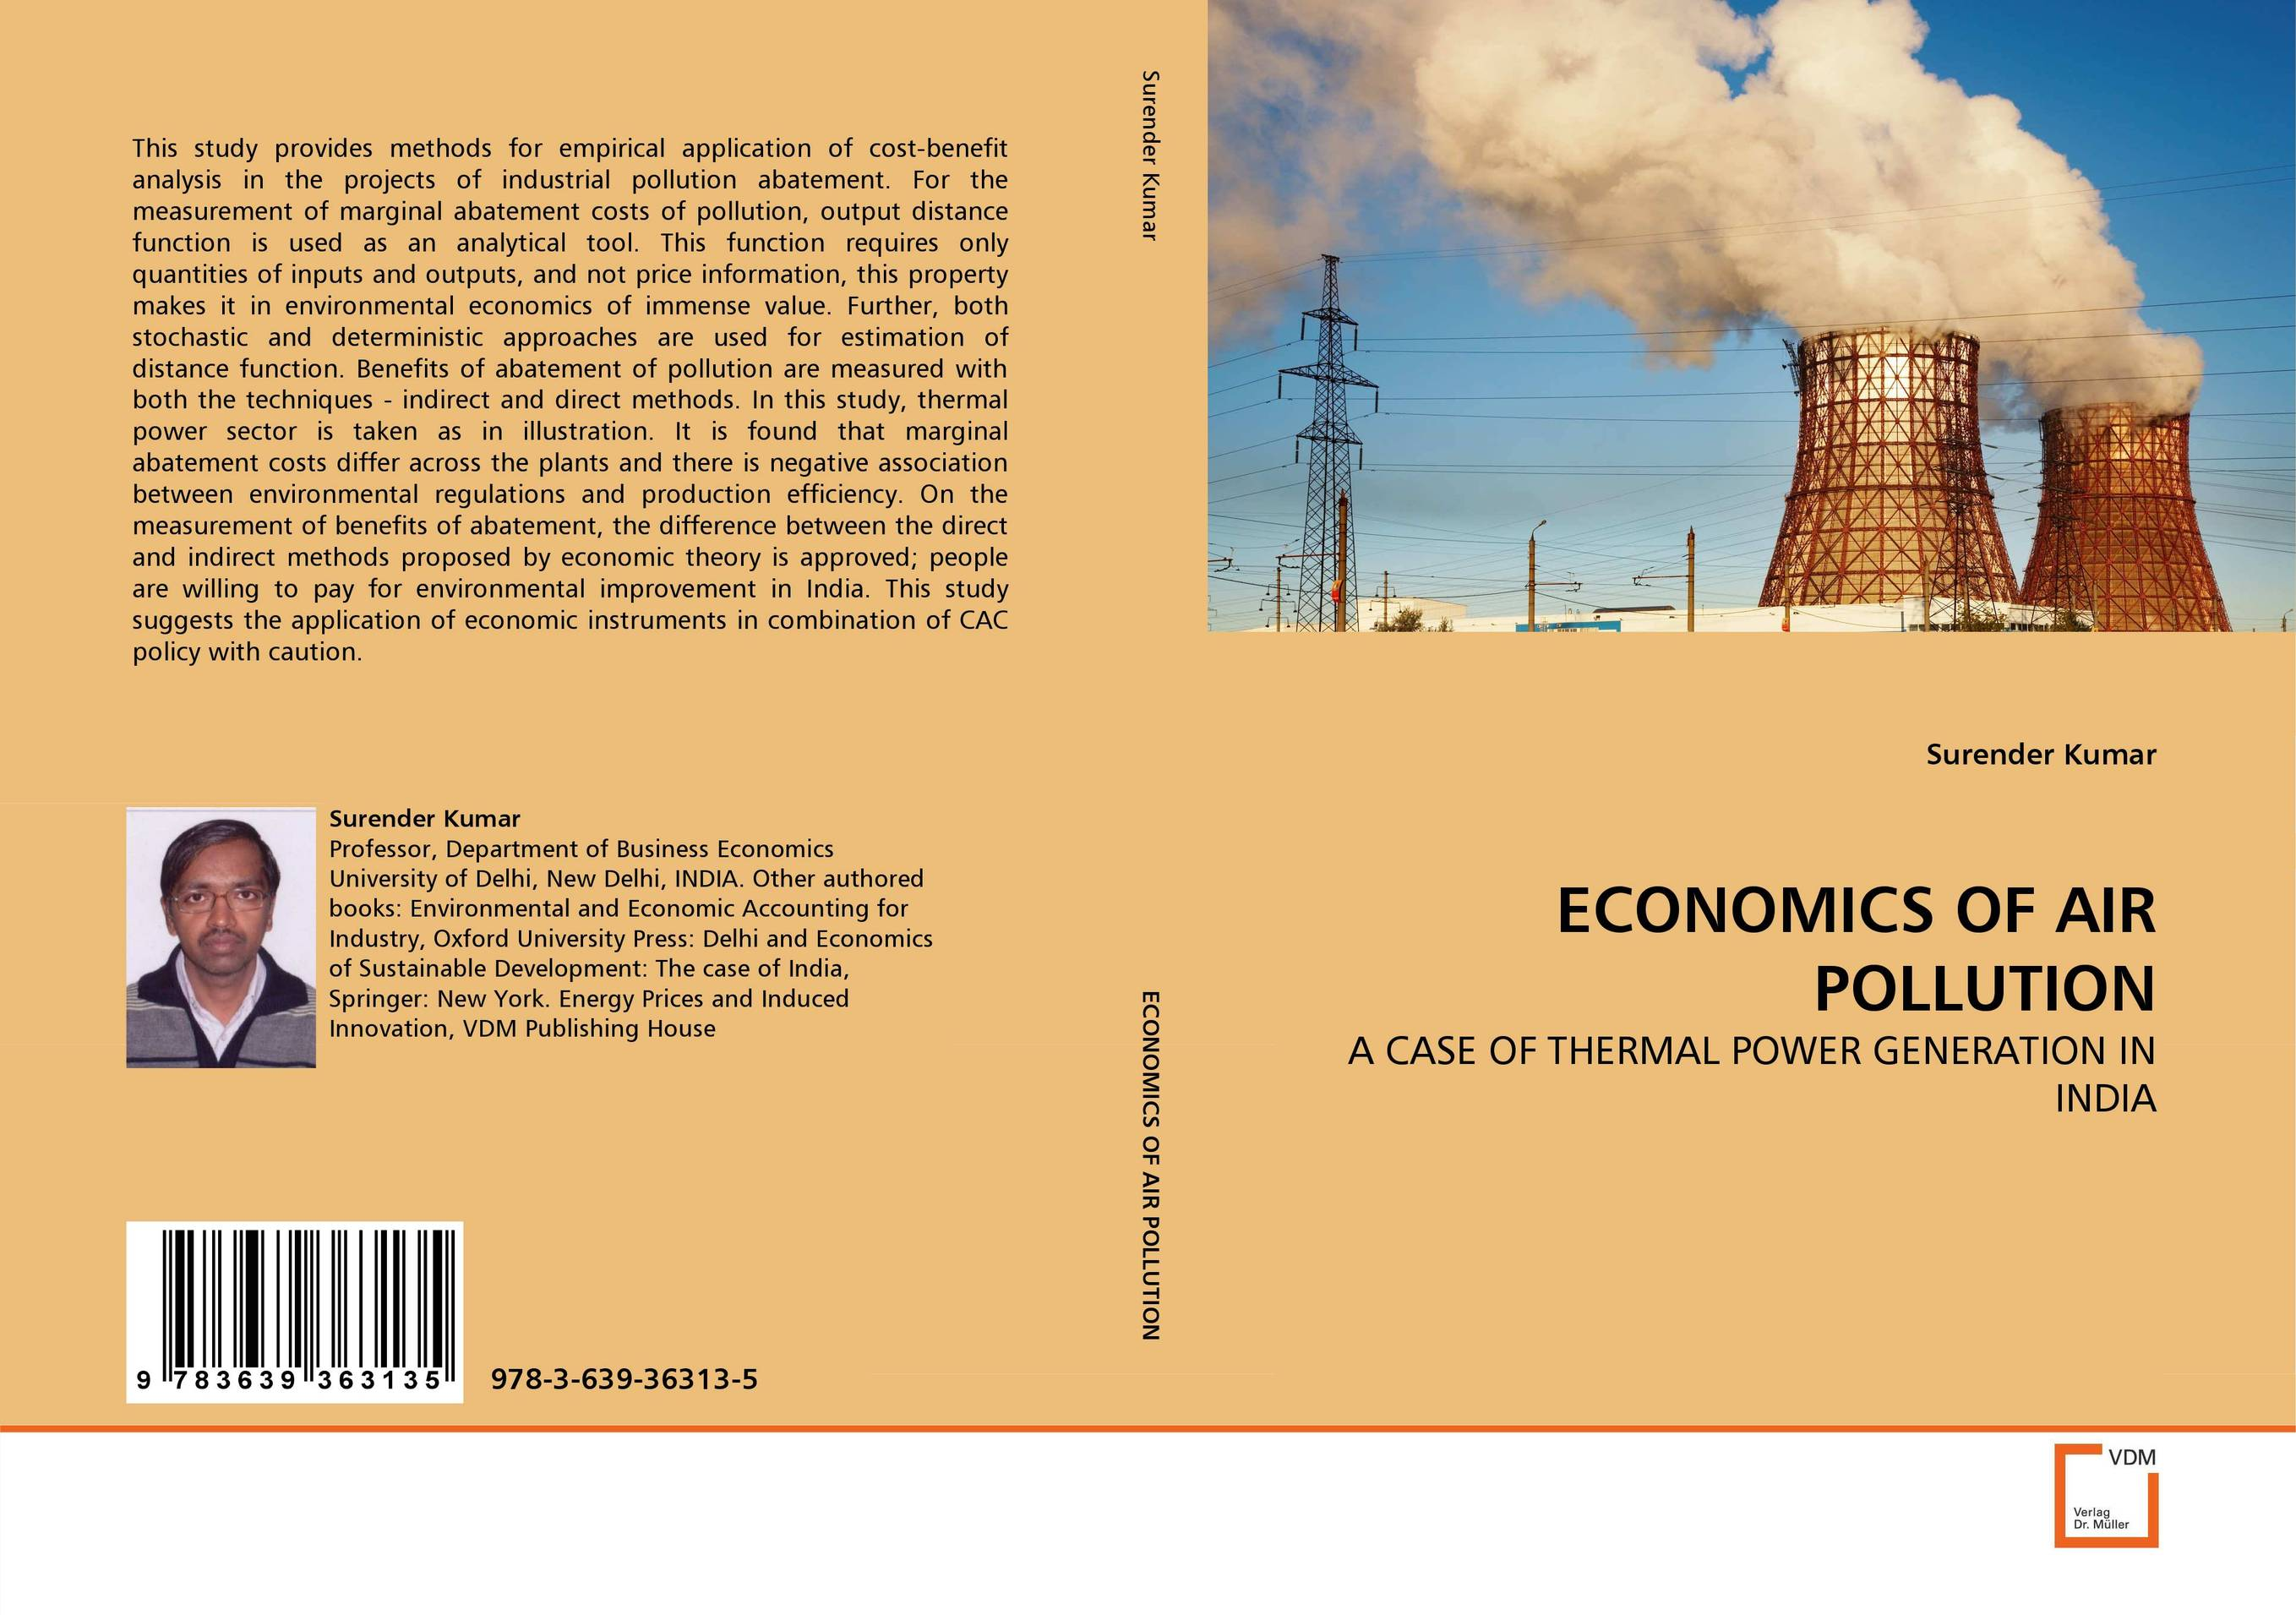 ECONOMICS OF AIR POLLUTION p k rao the economics of transaction costs theory methods and applications